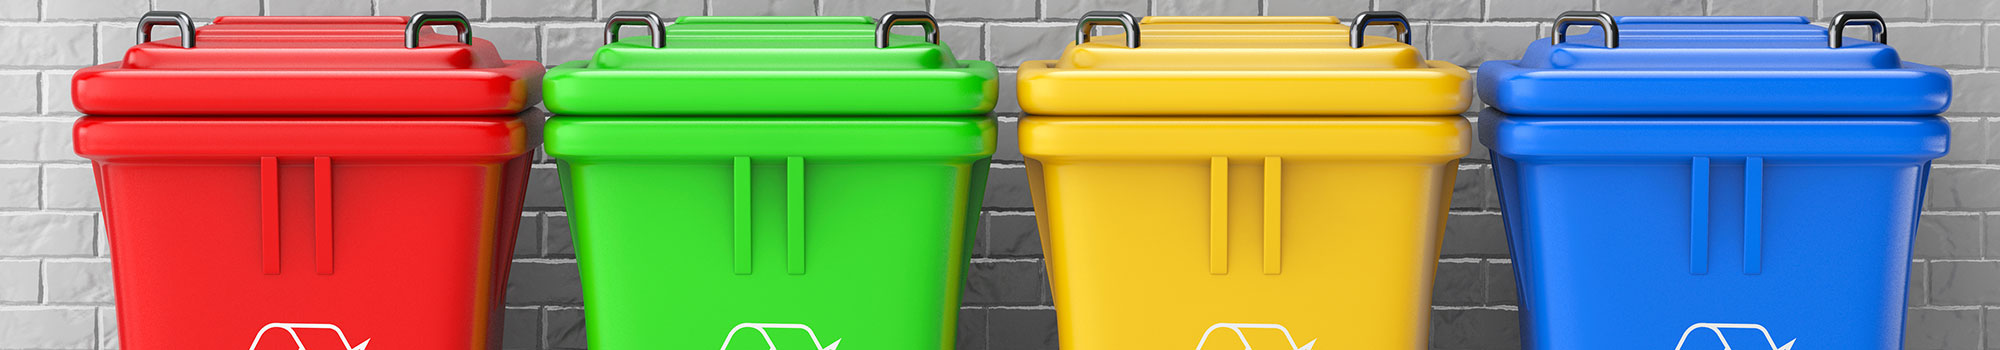 CS Recycling - Providing recycling services to customers across the South East